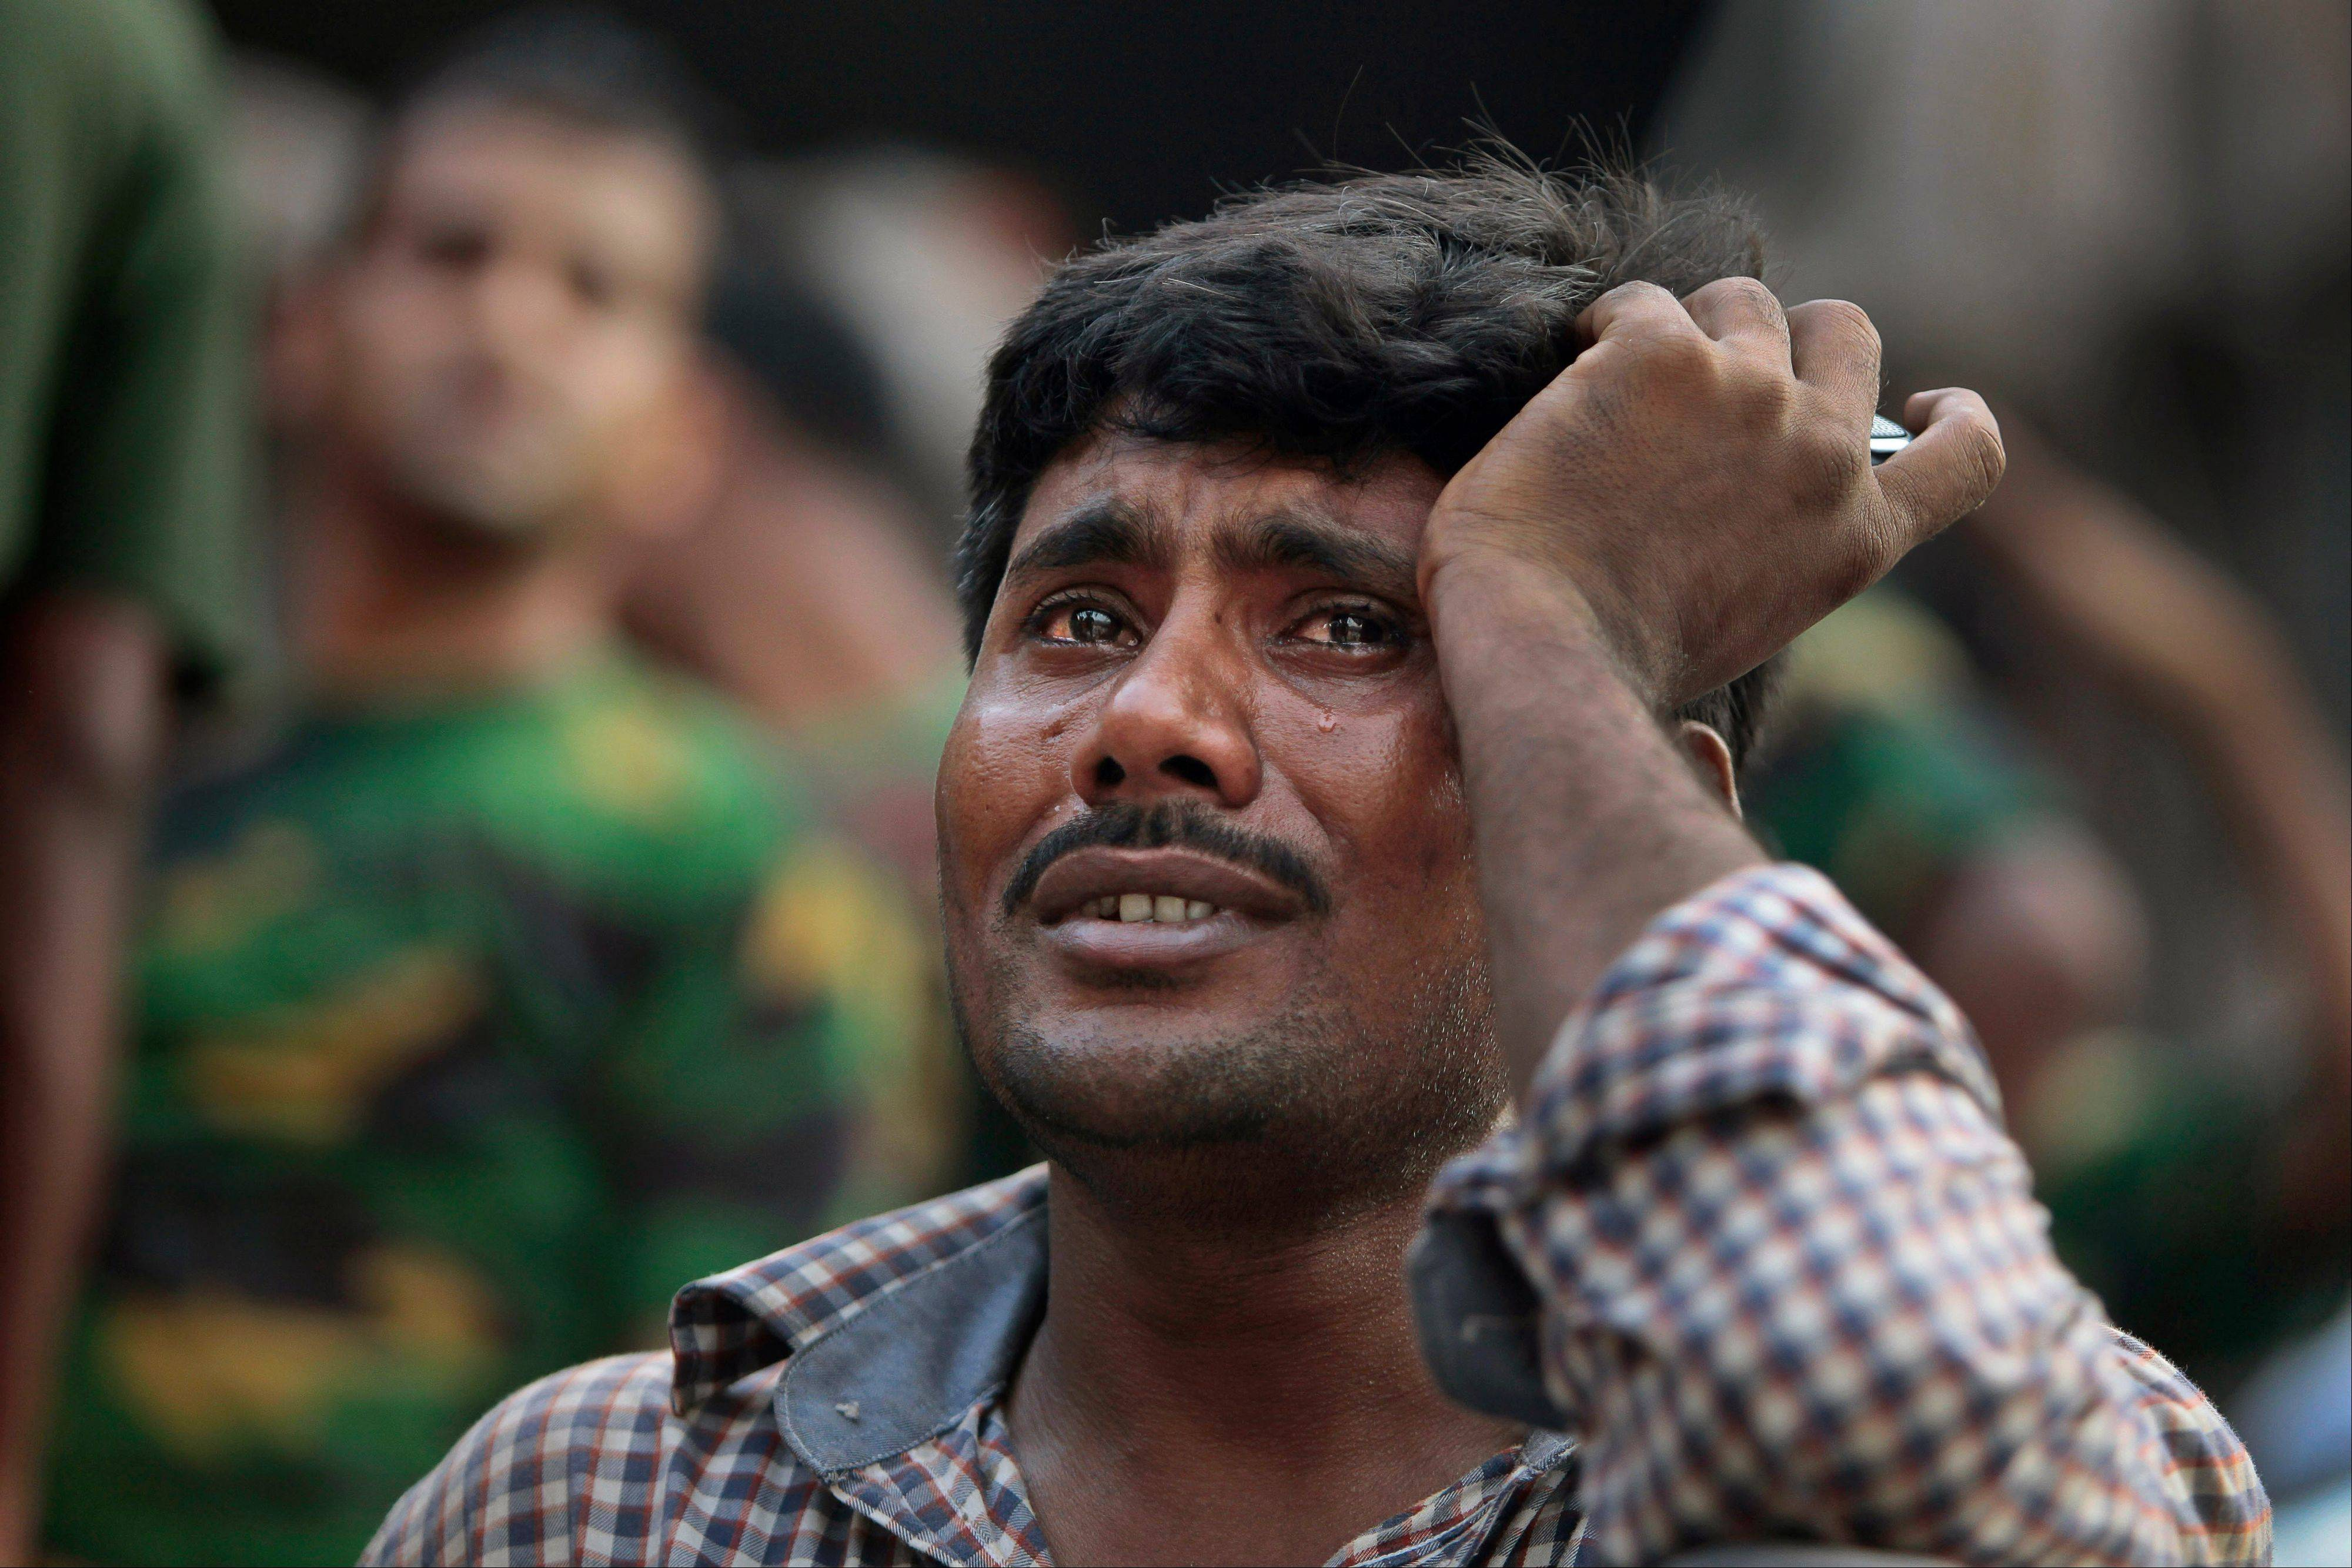 A Bangladeshi relative of a victim cries at the site of a building that collapsed Wednesday in Savar, near Dhaka, Bangladesh, Thursday, April 25, 2013. By Thursday, the death toll had reached more than 230.